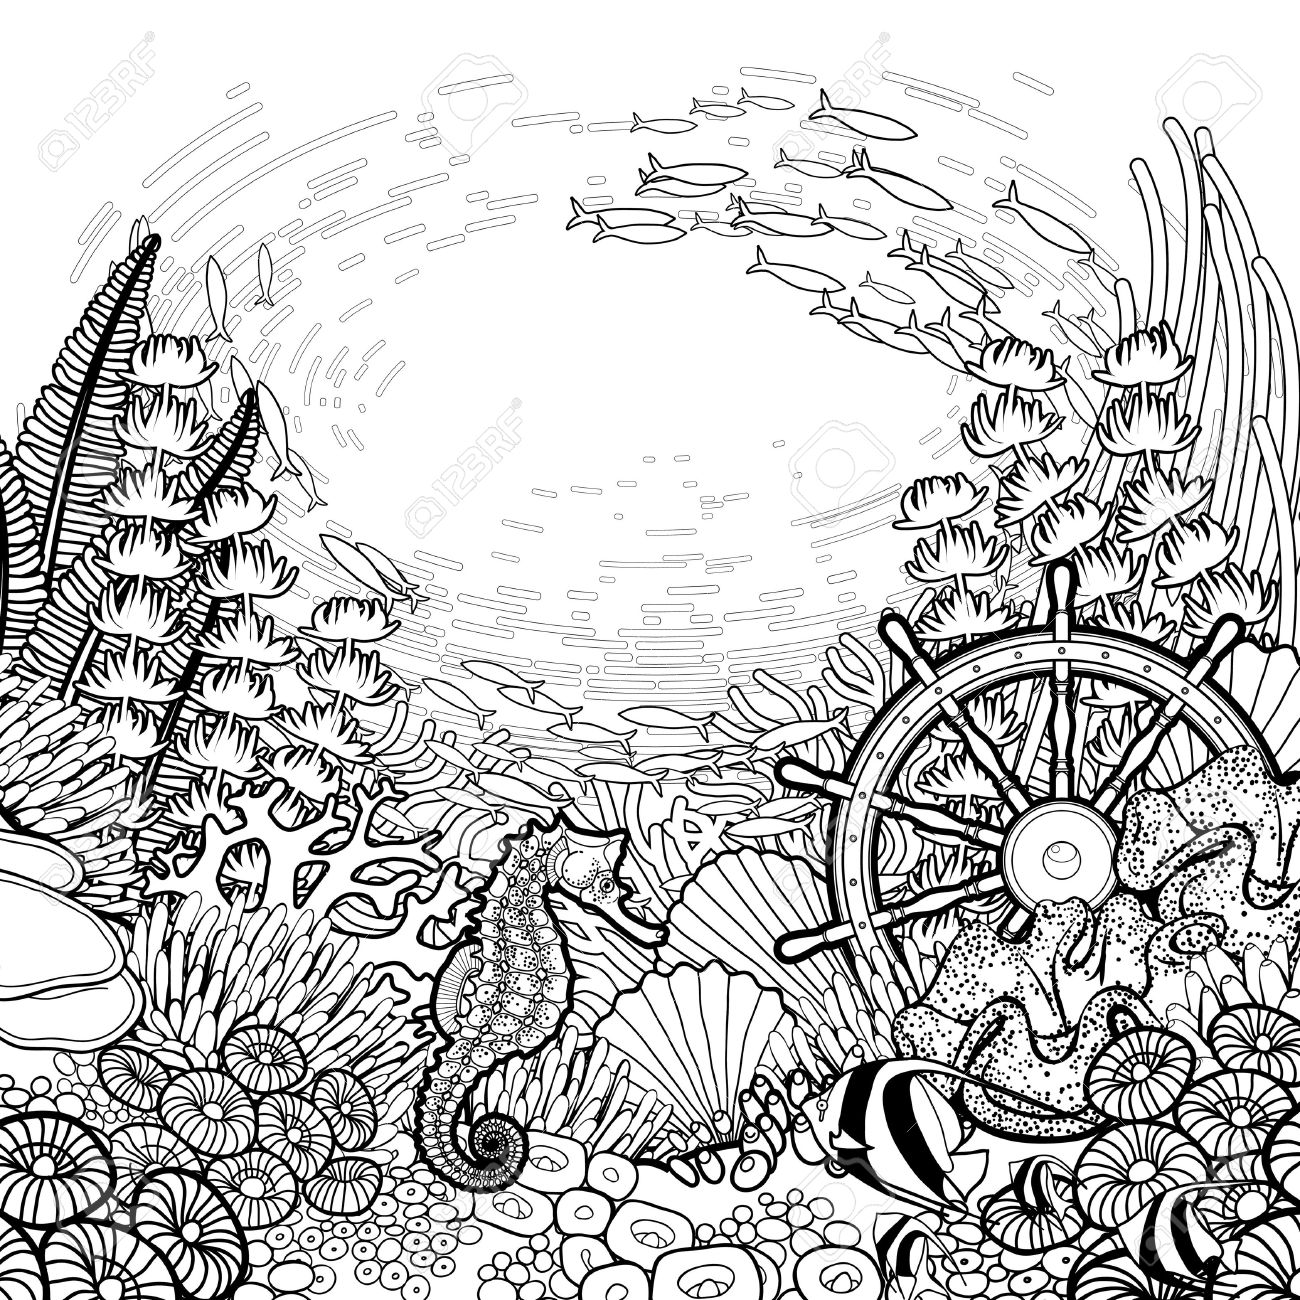 coral reef coloring pages good graphic coral reef with sea horse